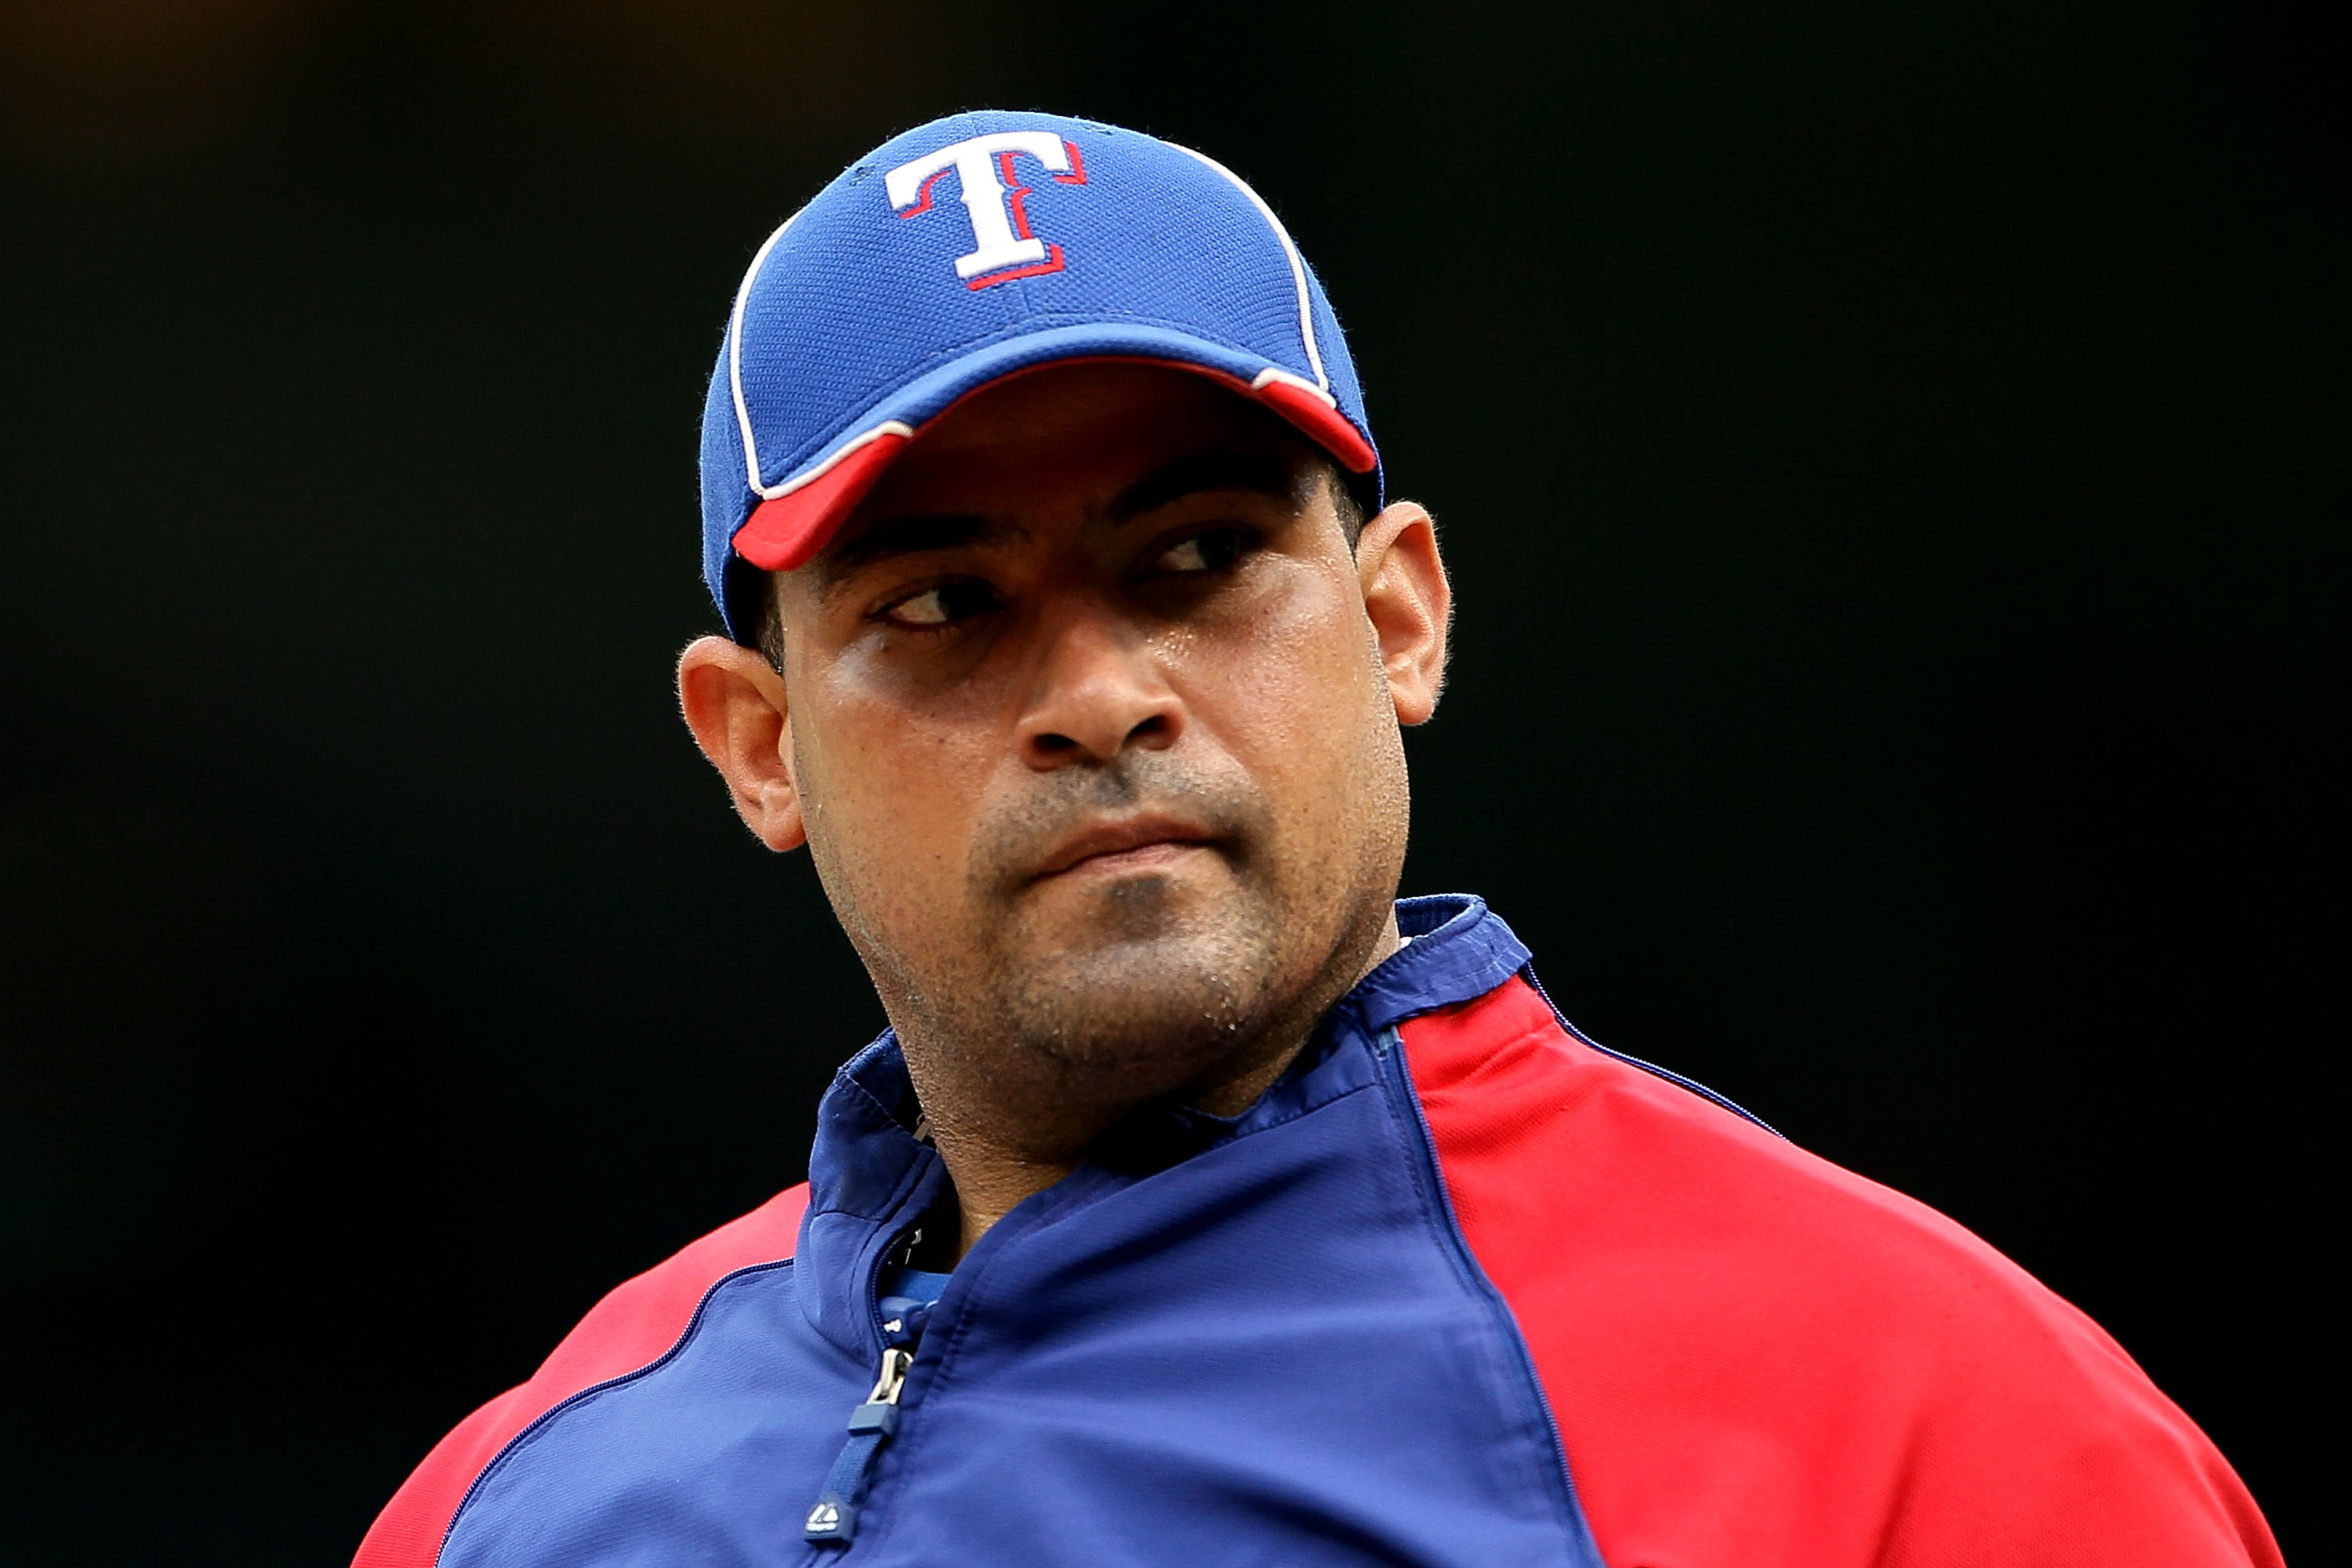 ARLINGTON, TX - OCTOBER 22:  Bengie Molina #11 of the Texas Rangers looks on during batting practice against the New York Yankees in Game Six of the ALCS during the 2010 MLB Playoffs at Rangers Ballpark in Arlington on October 22, 2010 in Arlington, Texas